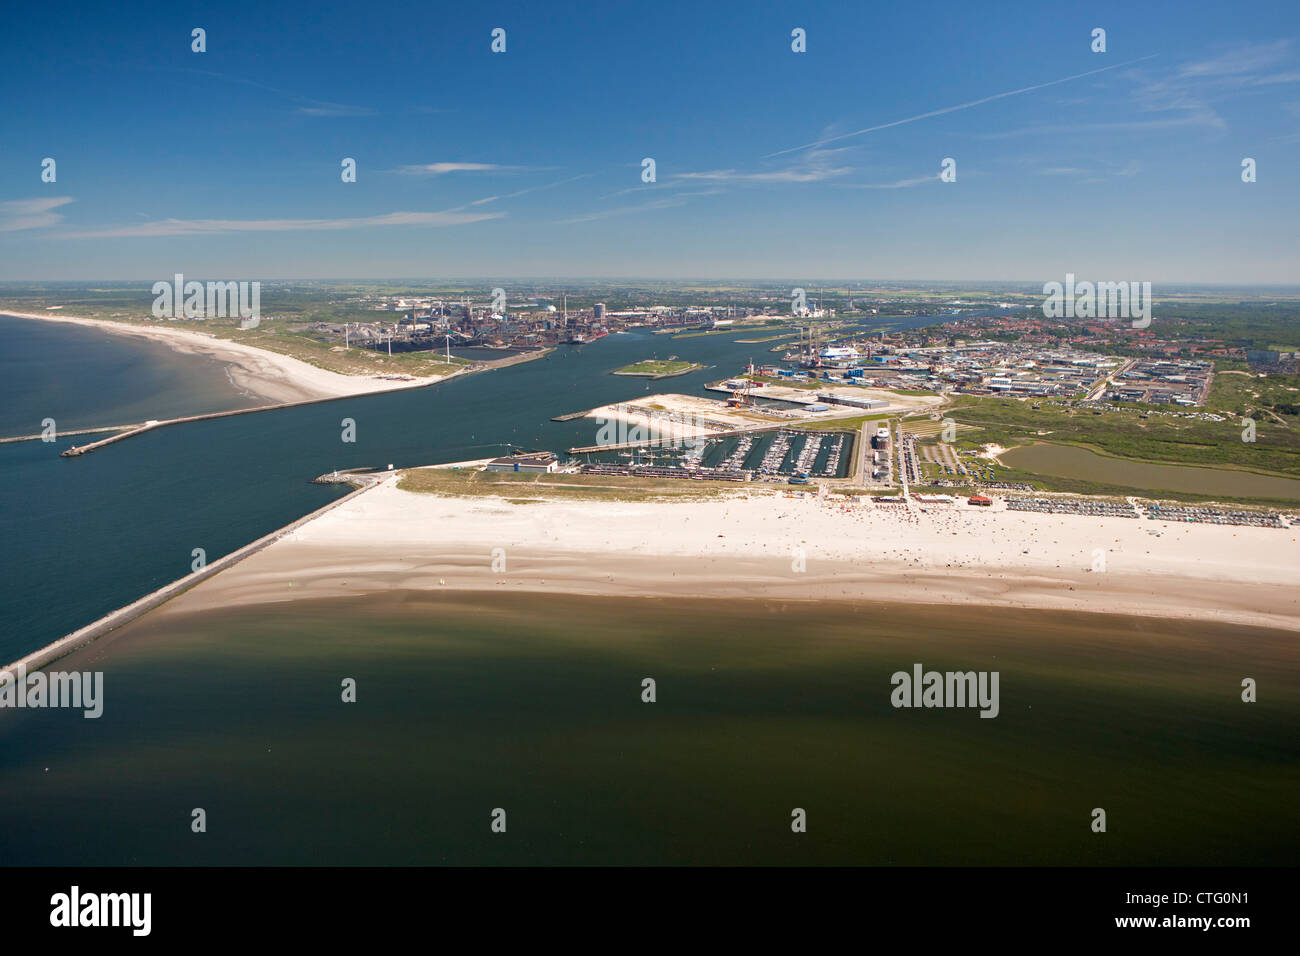 The Netherlands, IJmuiden, Aerial, Entrance of North Sea Canal. Beach. - Stock Image